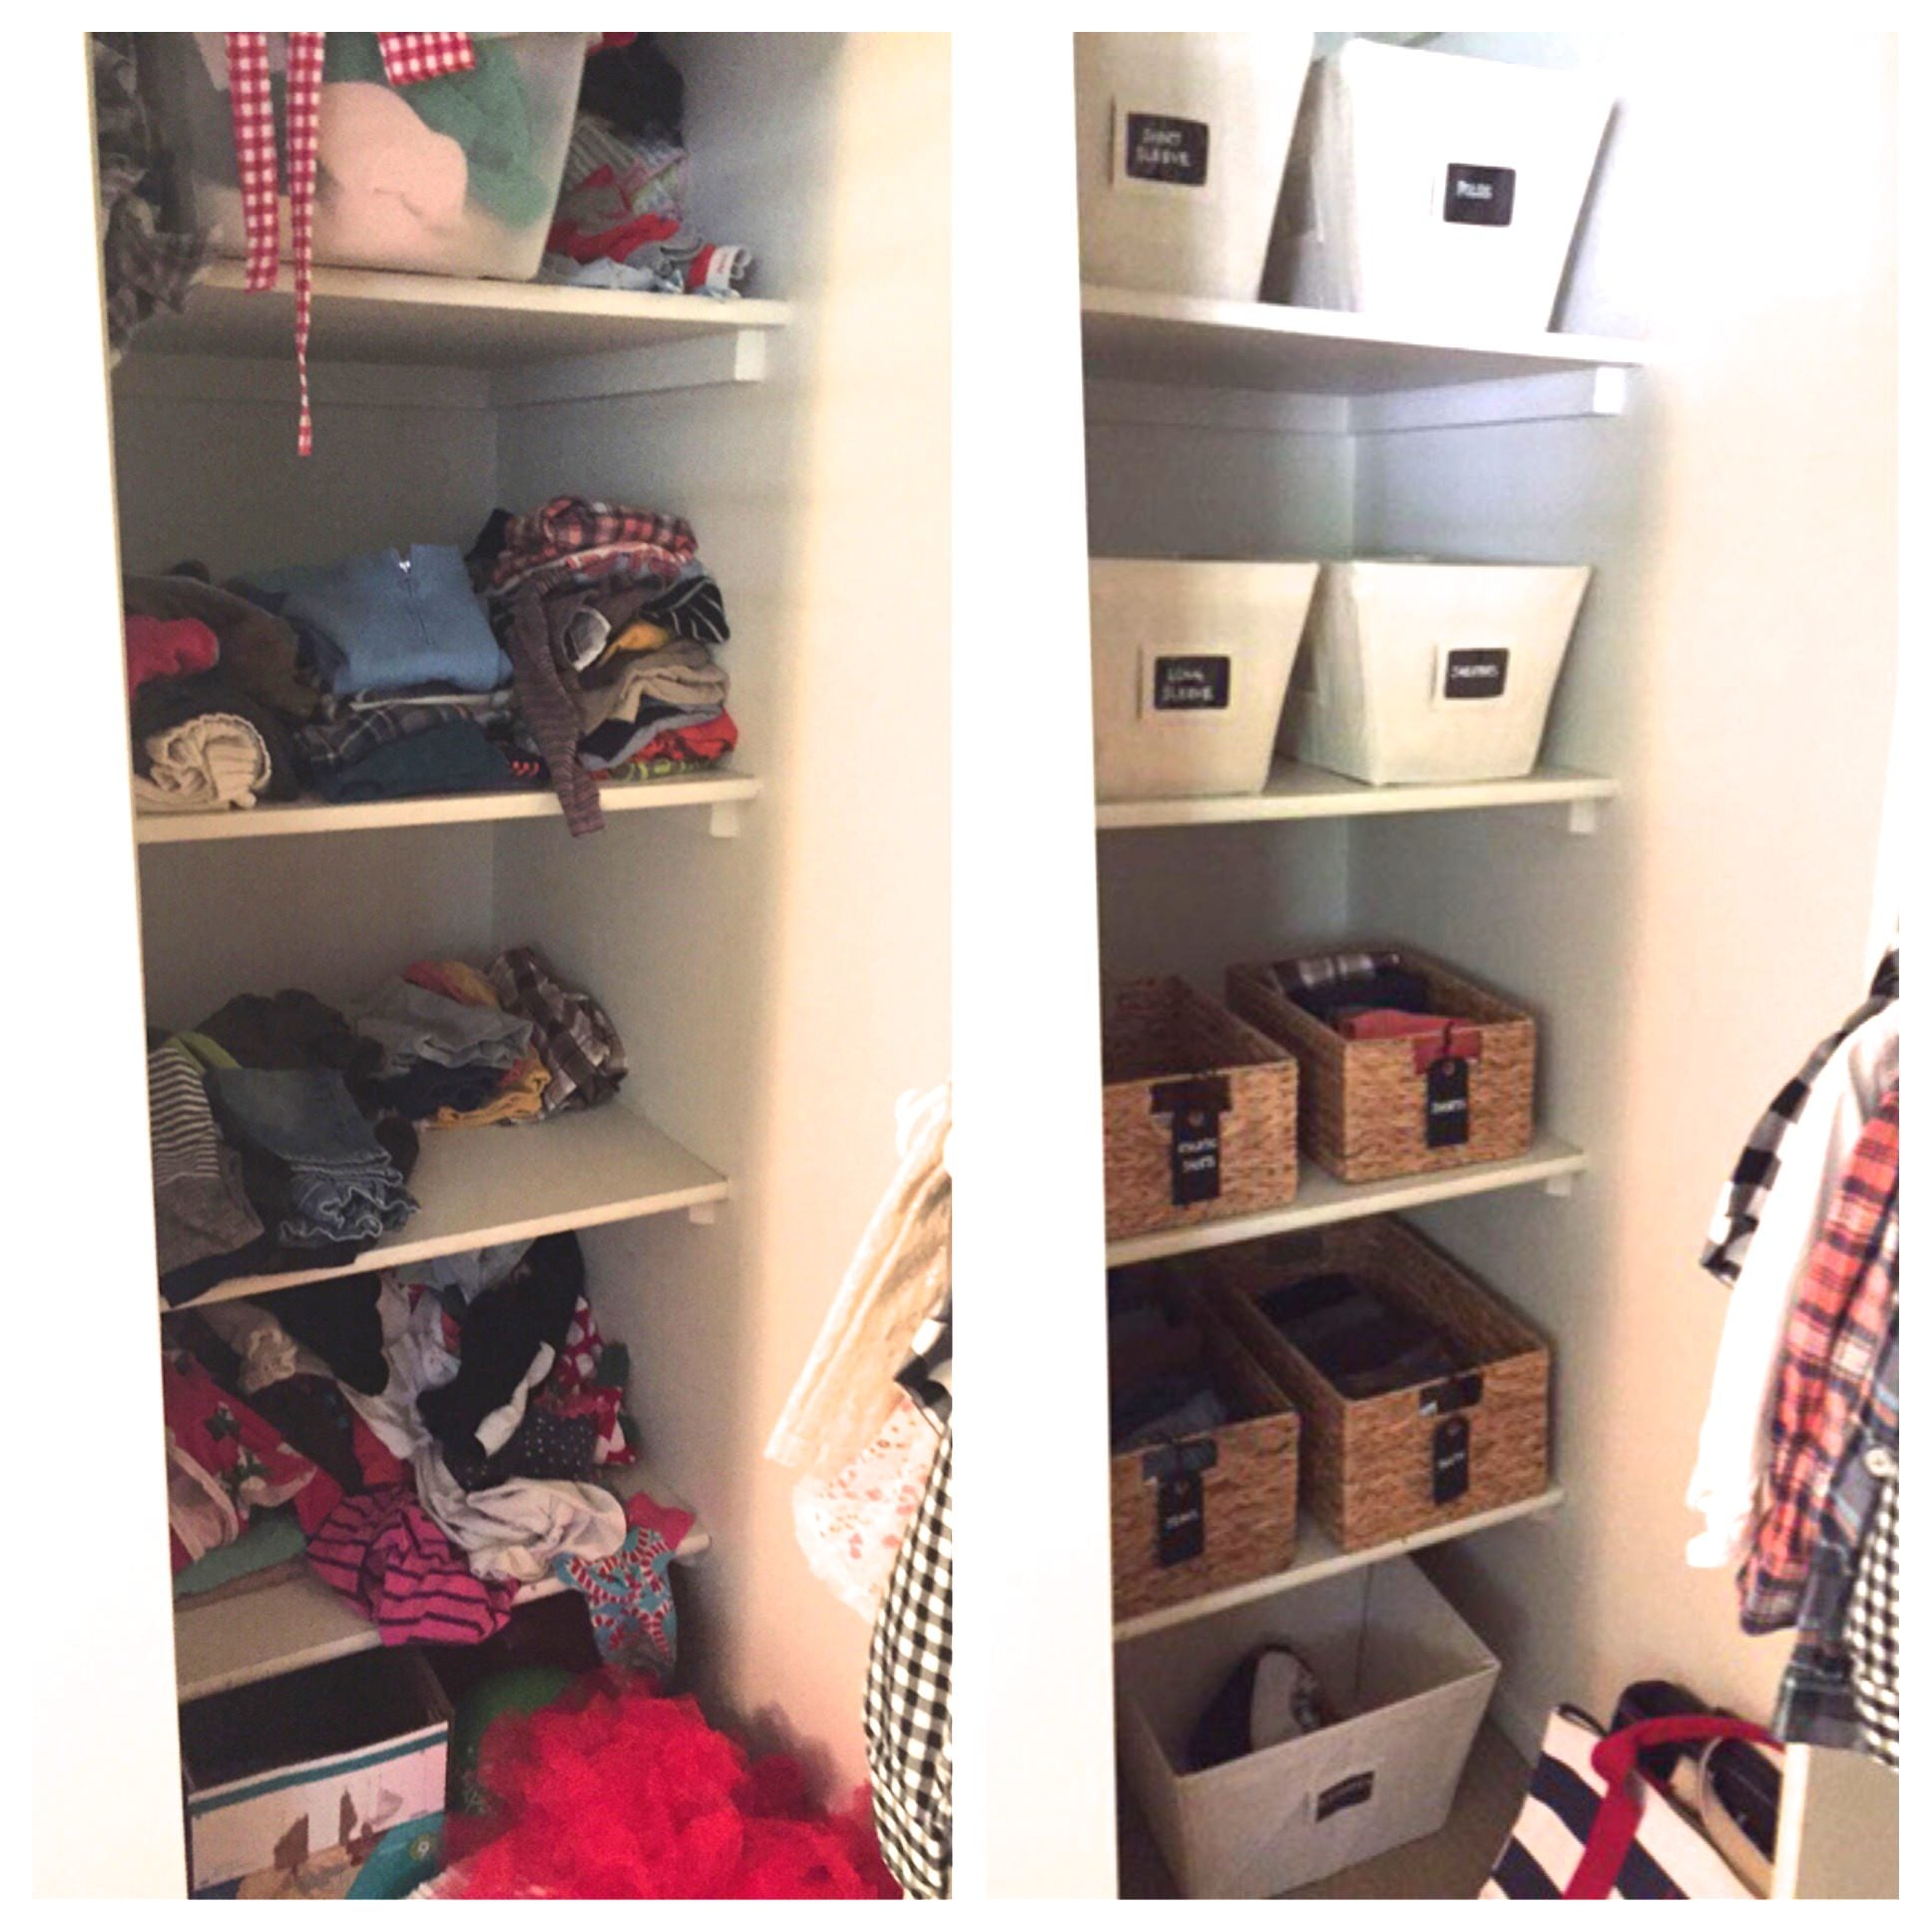 Professional organizer, Scottsdale, professional organizer scottsdale, home organization, Mika Perry, luxury residences, residential organization, before and after, children's closet, kids storage